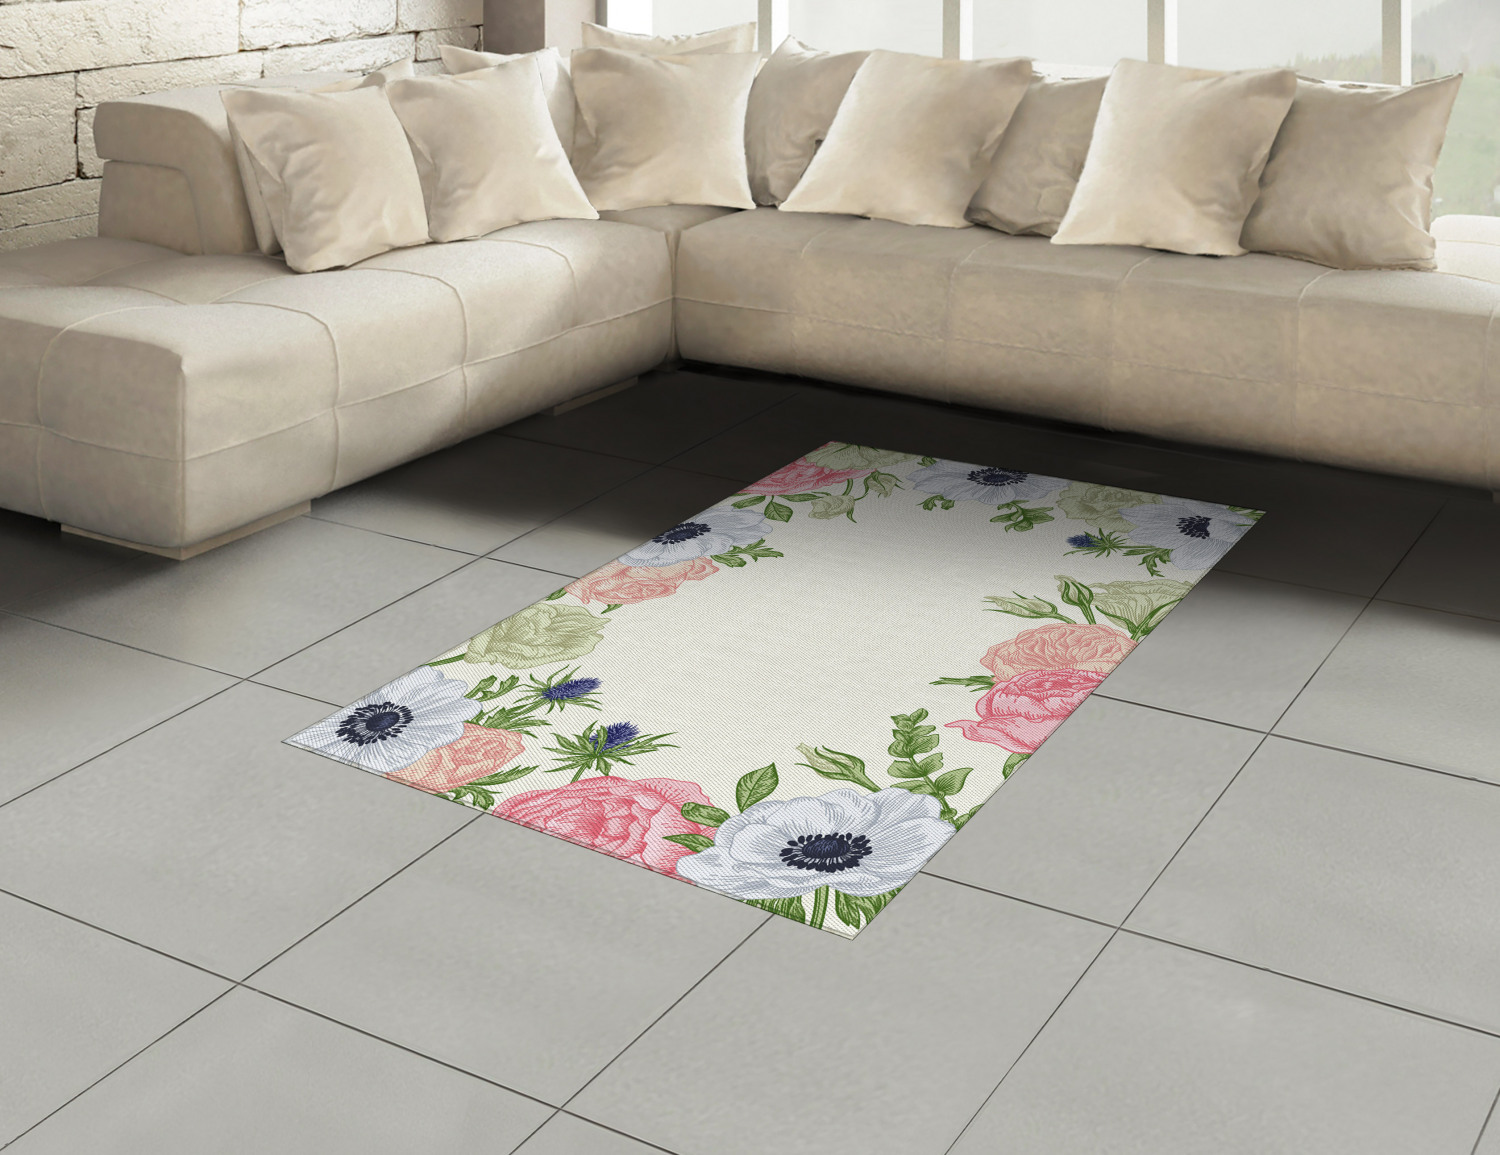 Anemone-Flower-Area-Rug-Decor-Flat-Woven-Accent-Rug-Home-Decor-2-Sizes-Ambesonne thumbnail 48